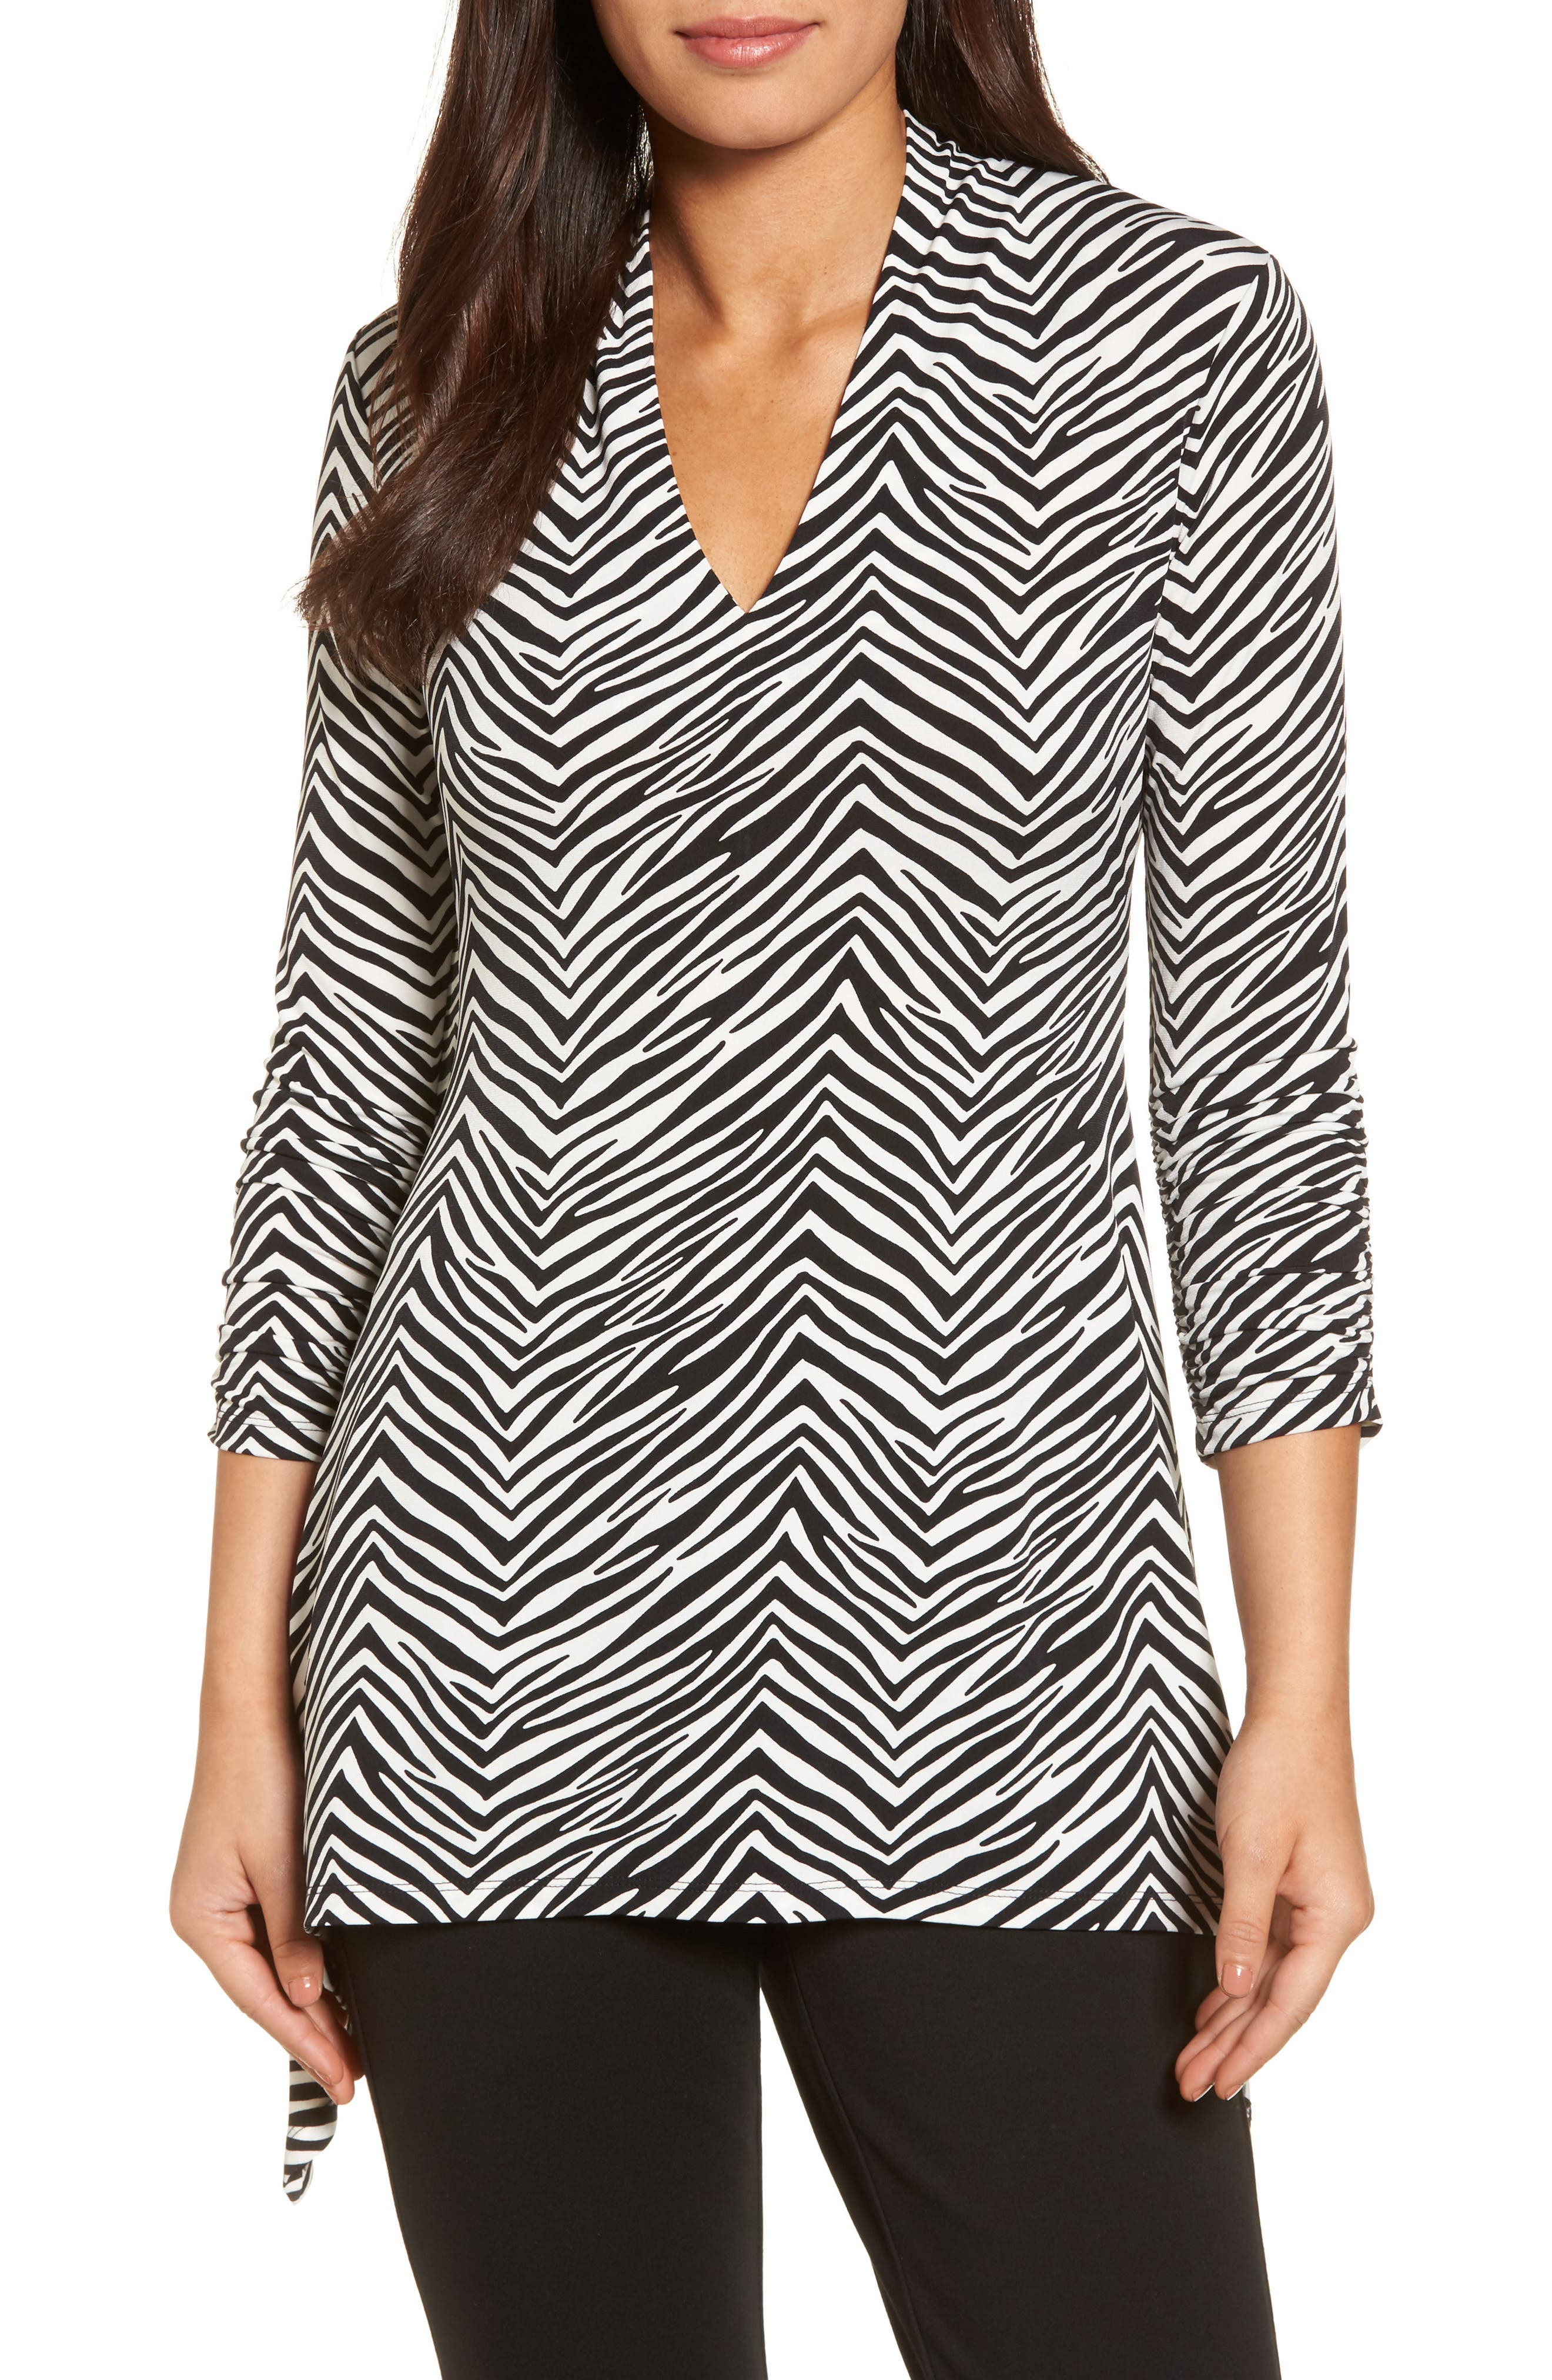 Alternate Image 1 Selected - Chaus Zebra Print Ruched Top